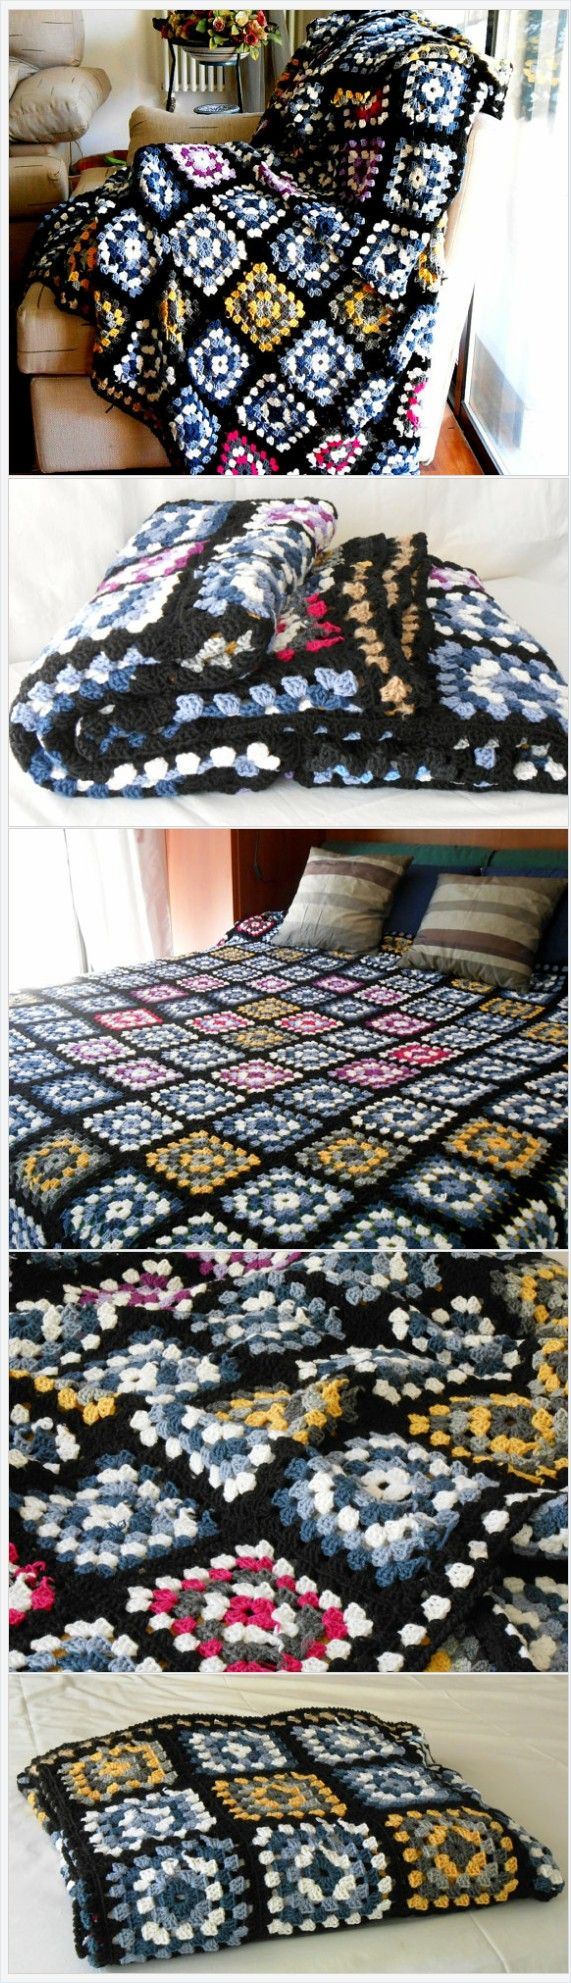 crochet blanket pure Merino wool, Granny square afghan, Wedding gift, cottage chic crochet afghan, Double Bed cover by cosediisa